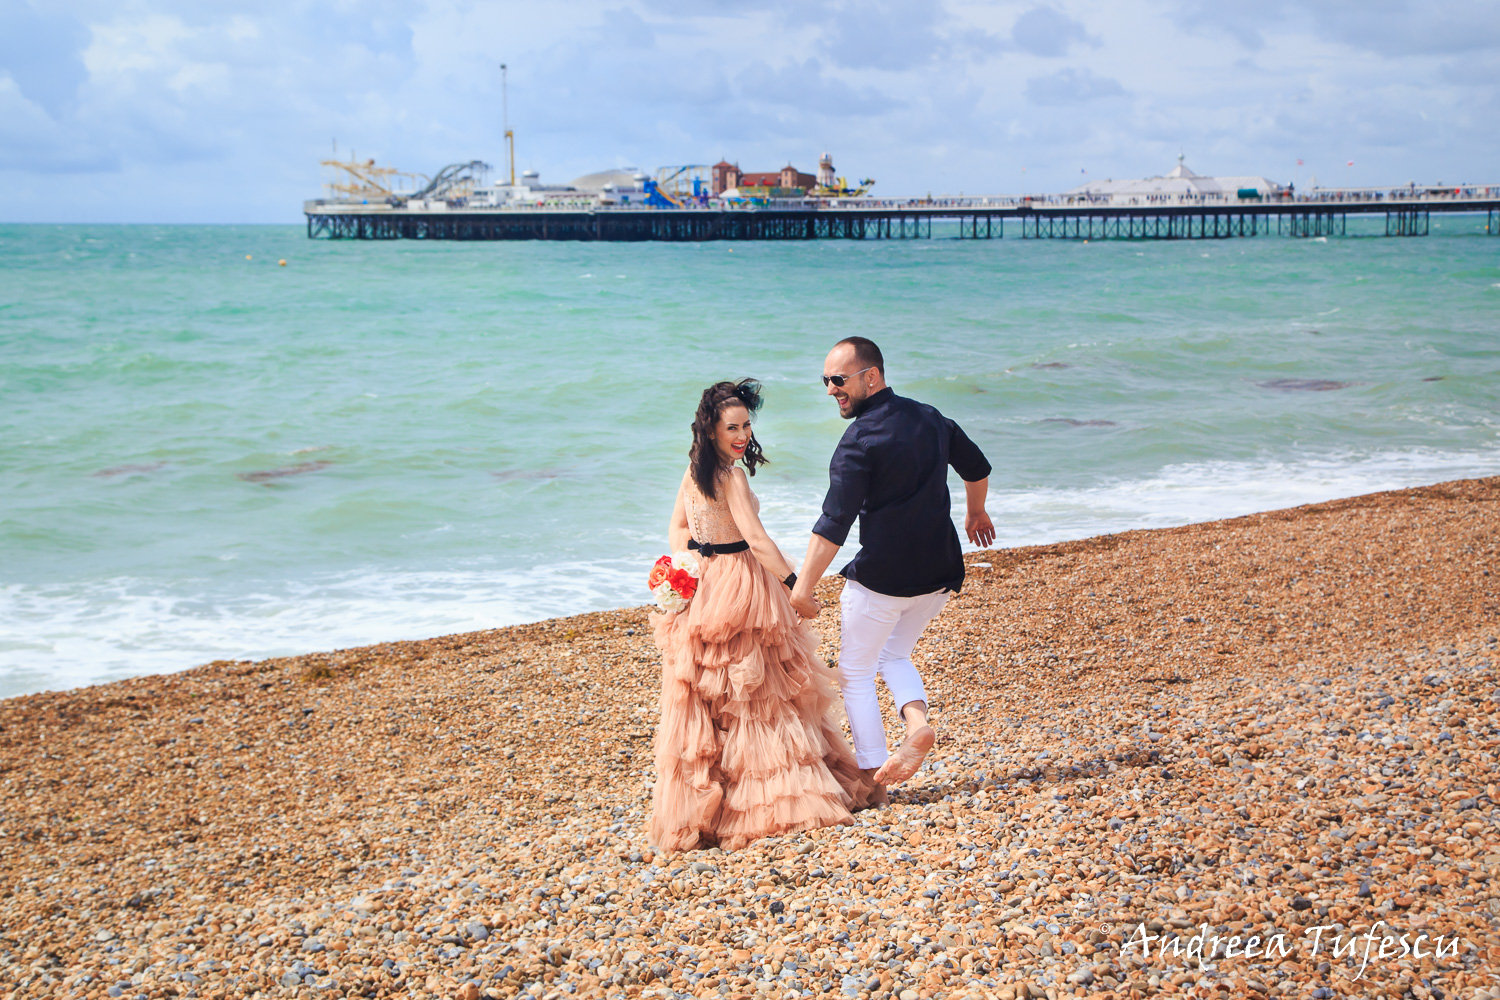 Wedding and Engagement Photography by Andreea Tufescu - Love the Dress photoshoot Brighton A & A